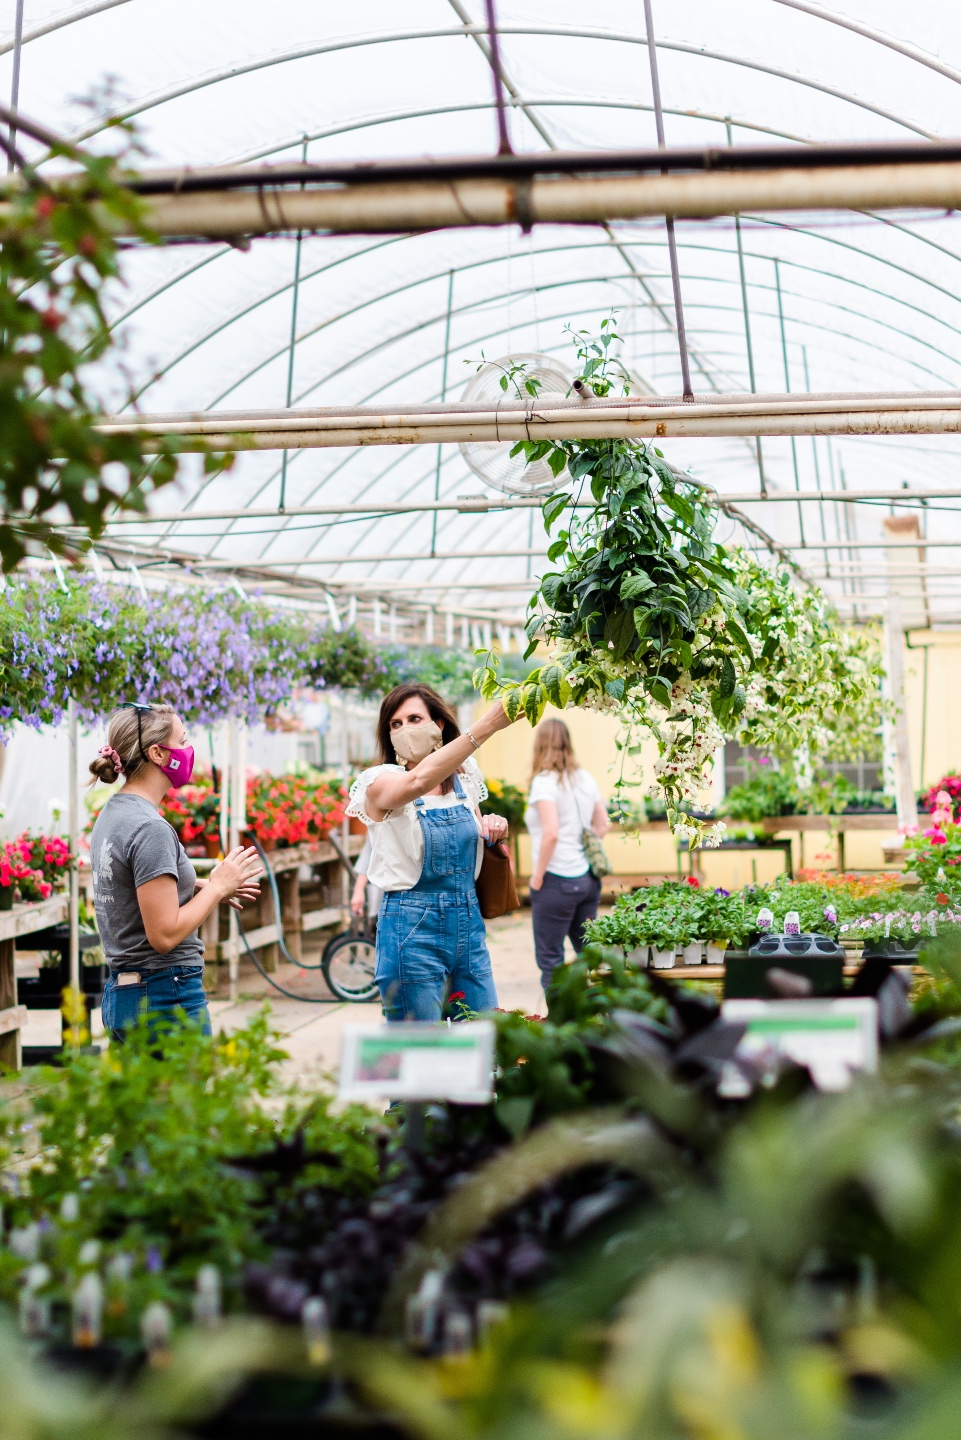 5 Spring Planting Tips with Fairview Garden Center - I'm Fixin' To - @imfixintoblog |Best Plants to Plant in Spring by popular NC lifestyle blog: image of two women looking at a hanging plant at the Fairview Garden Center.